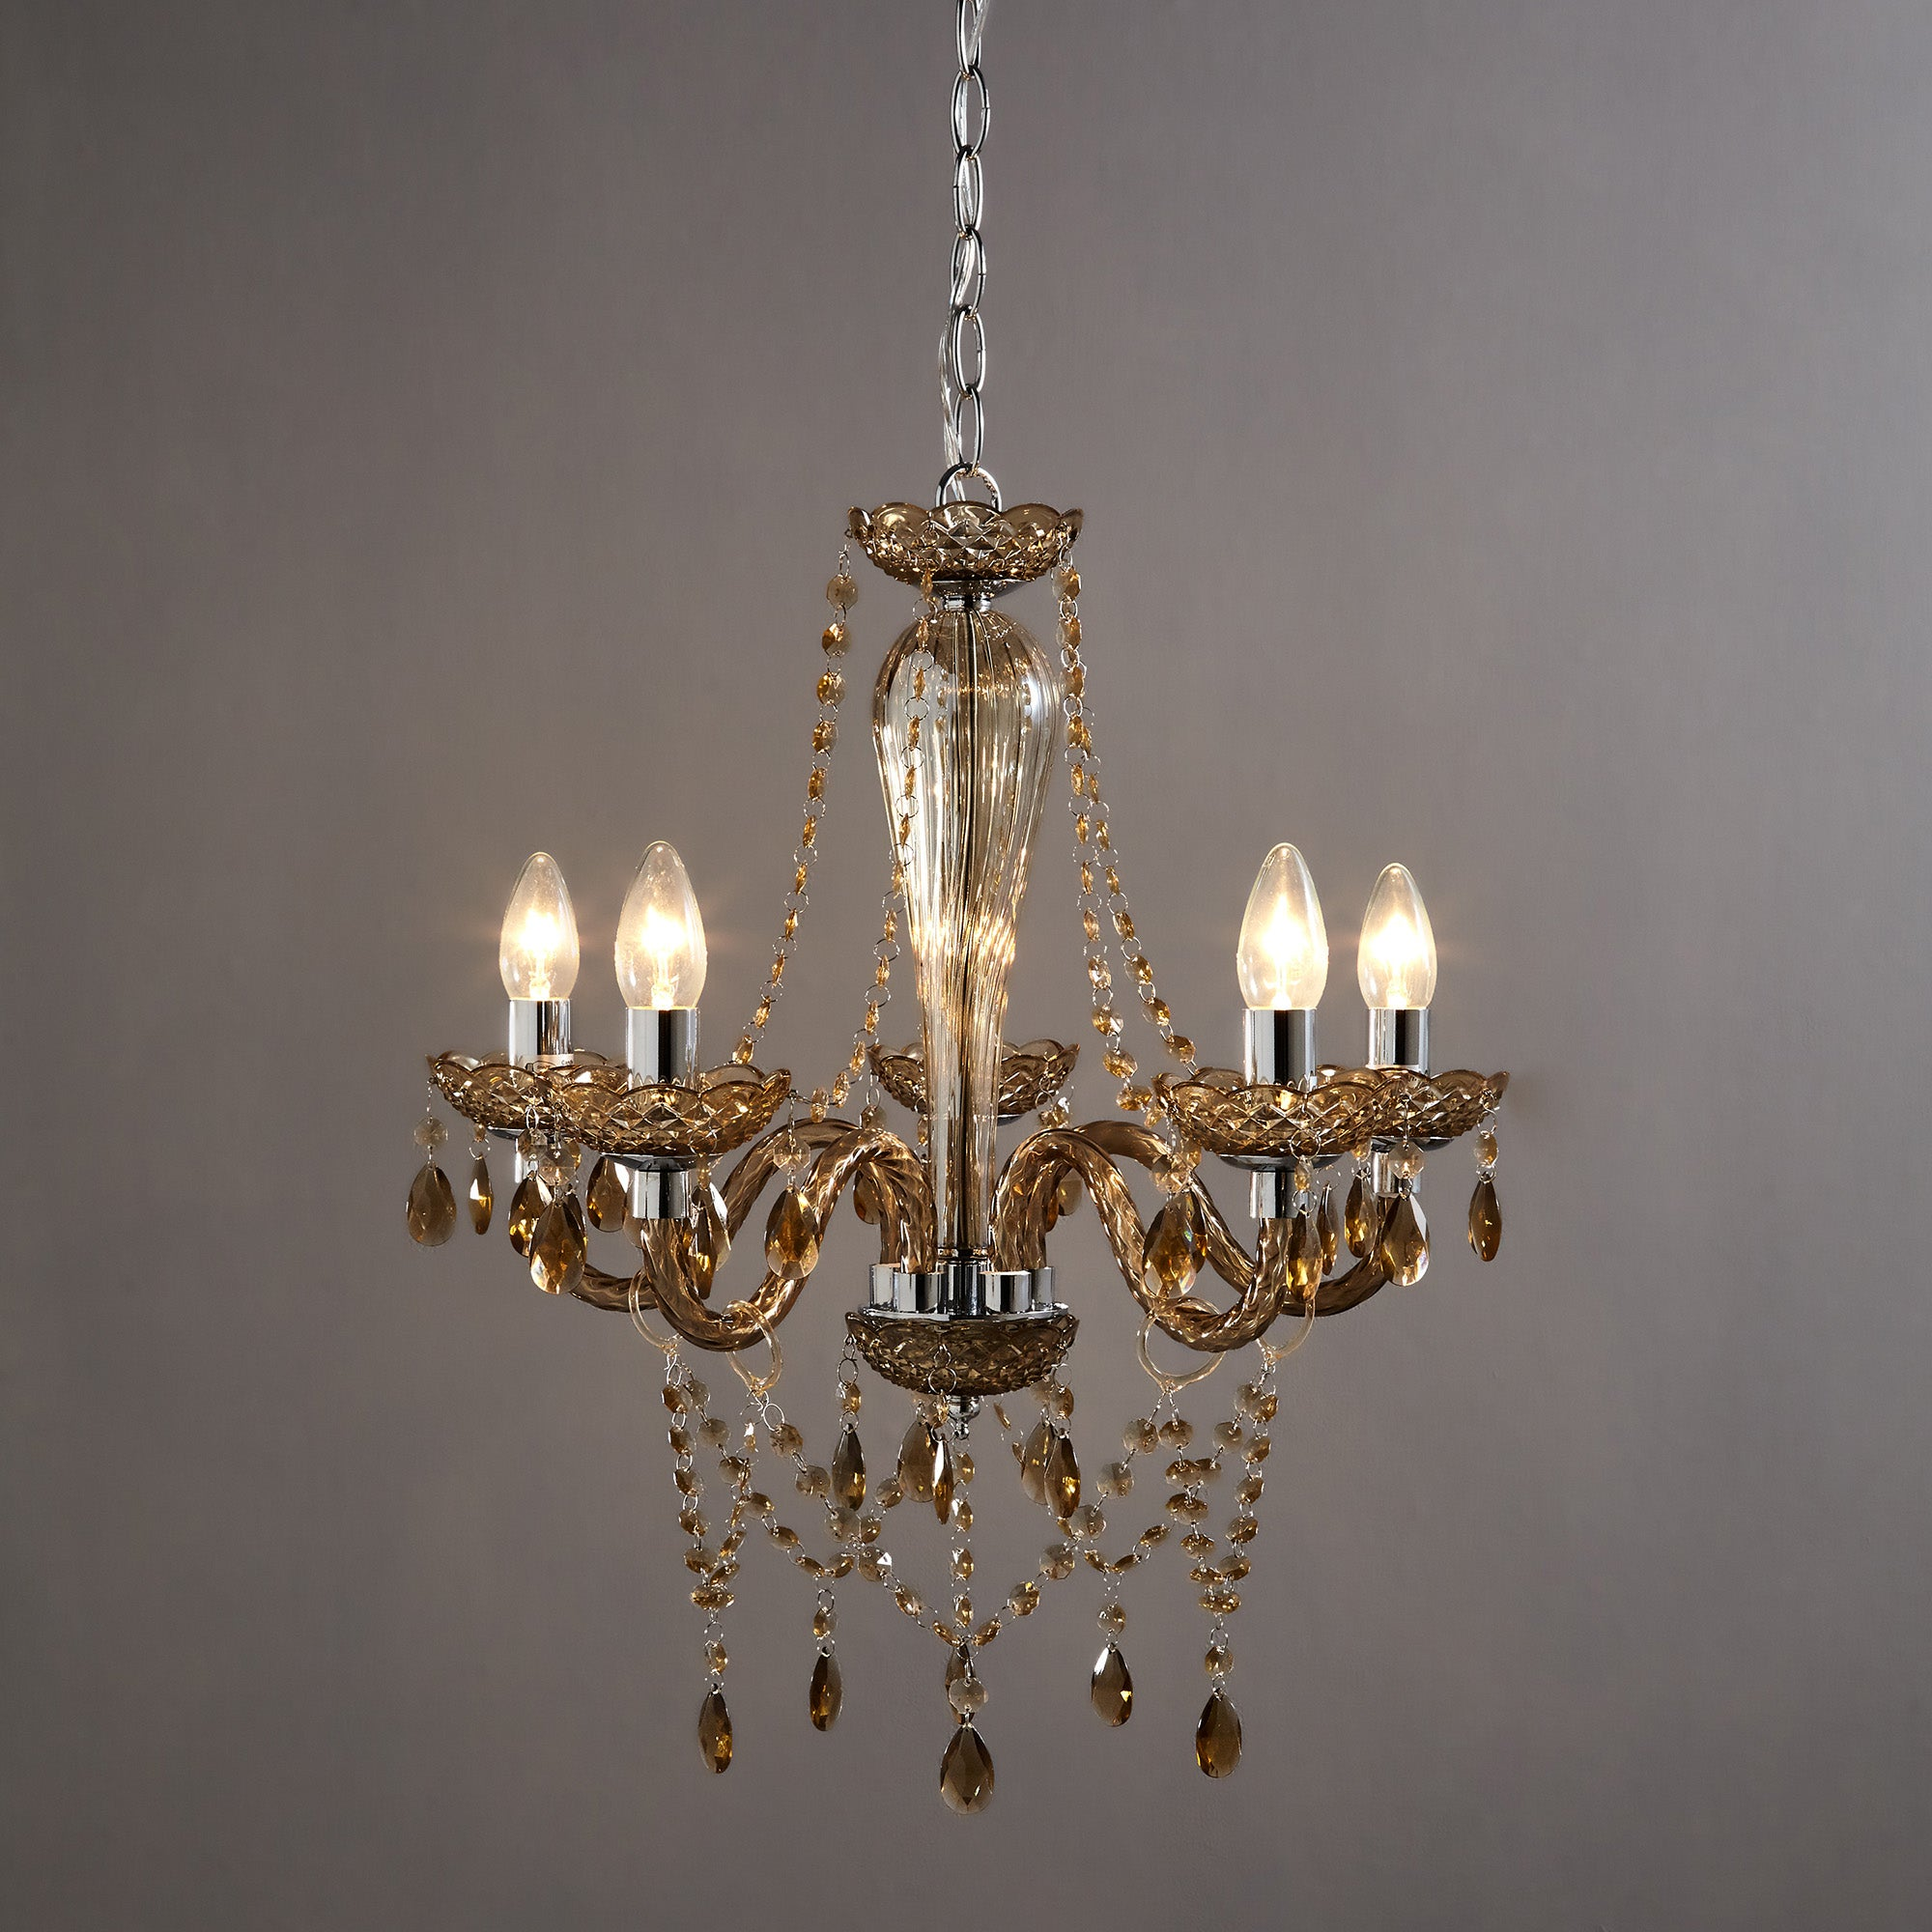 Champagne Antoinette 5 Light Fitting